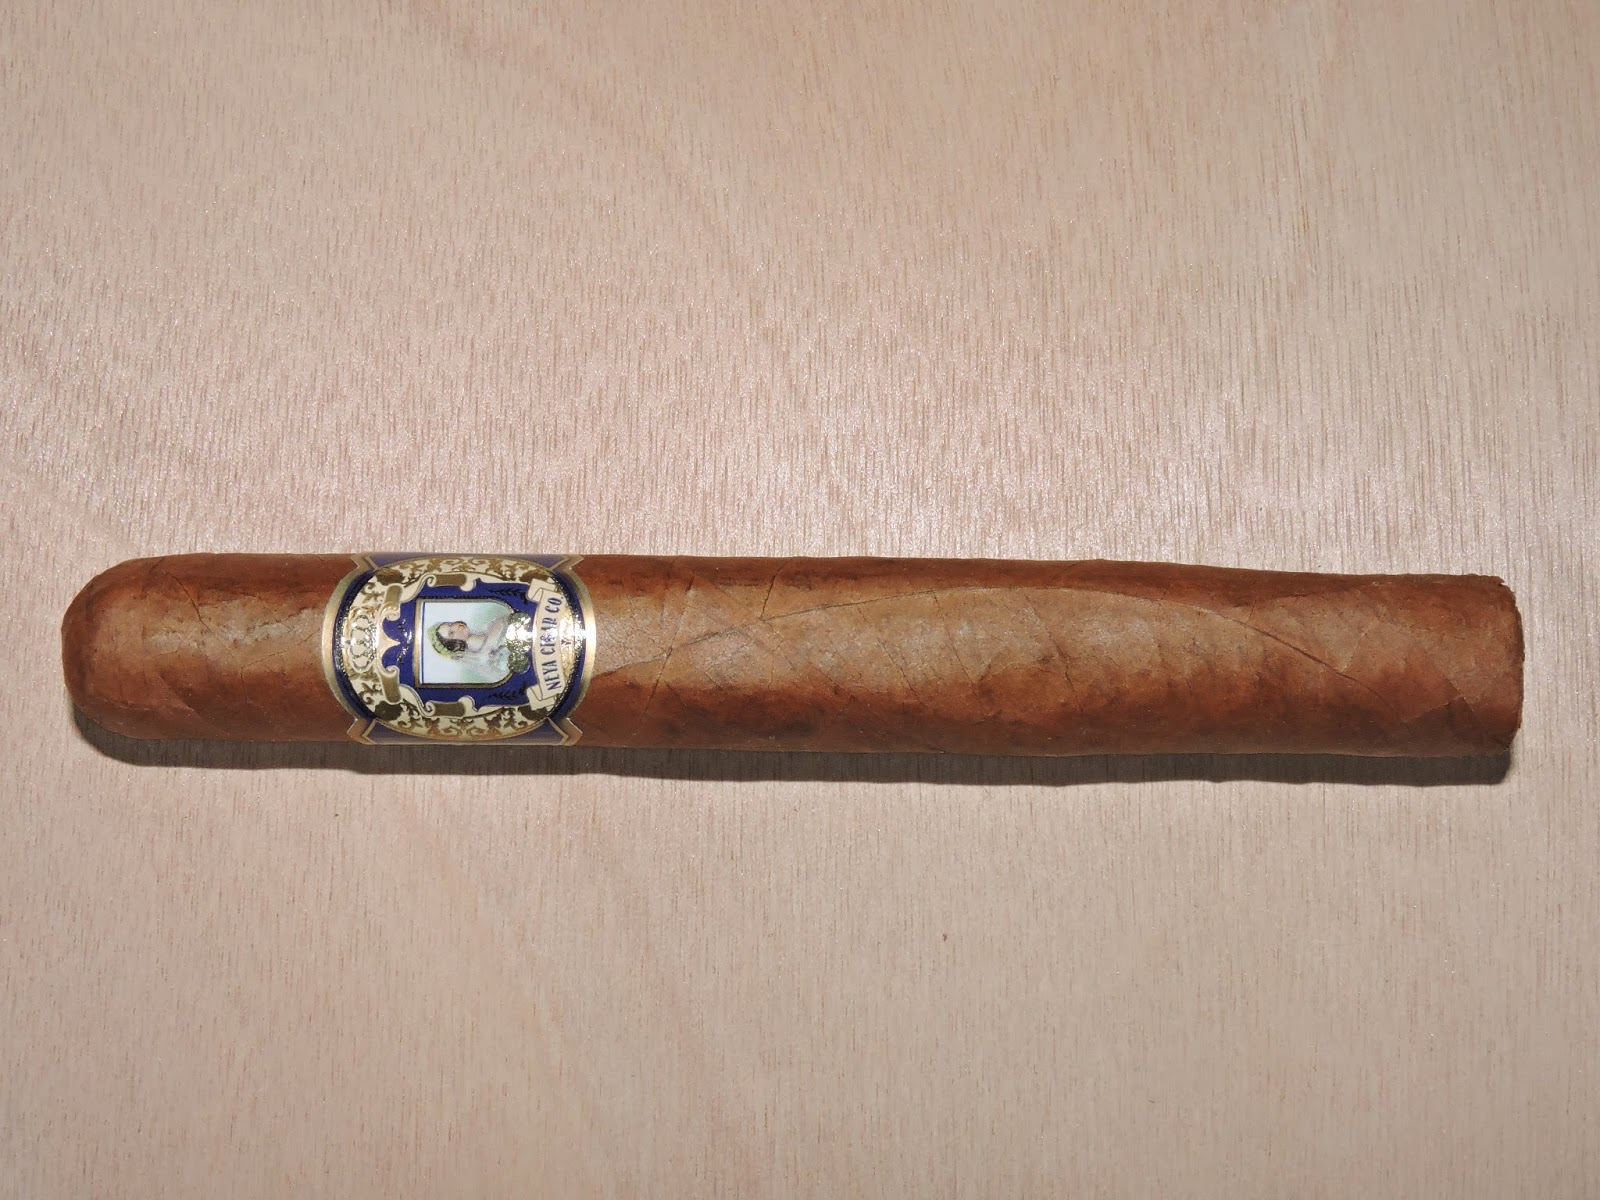 Cigar Review: Neya Classic Cañonazo by Roberto P. Duran Cigars